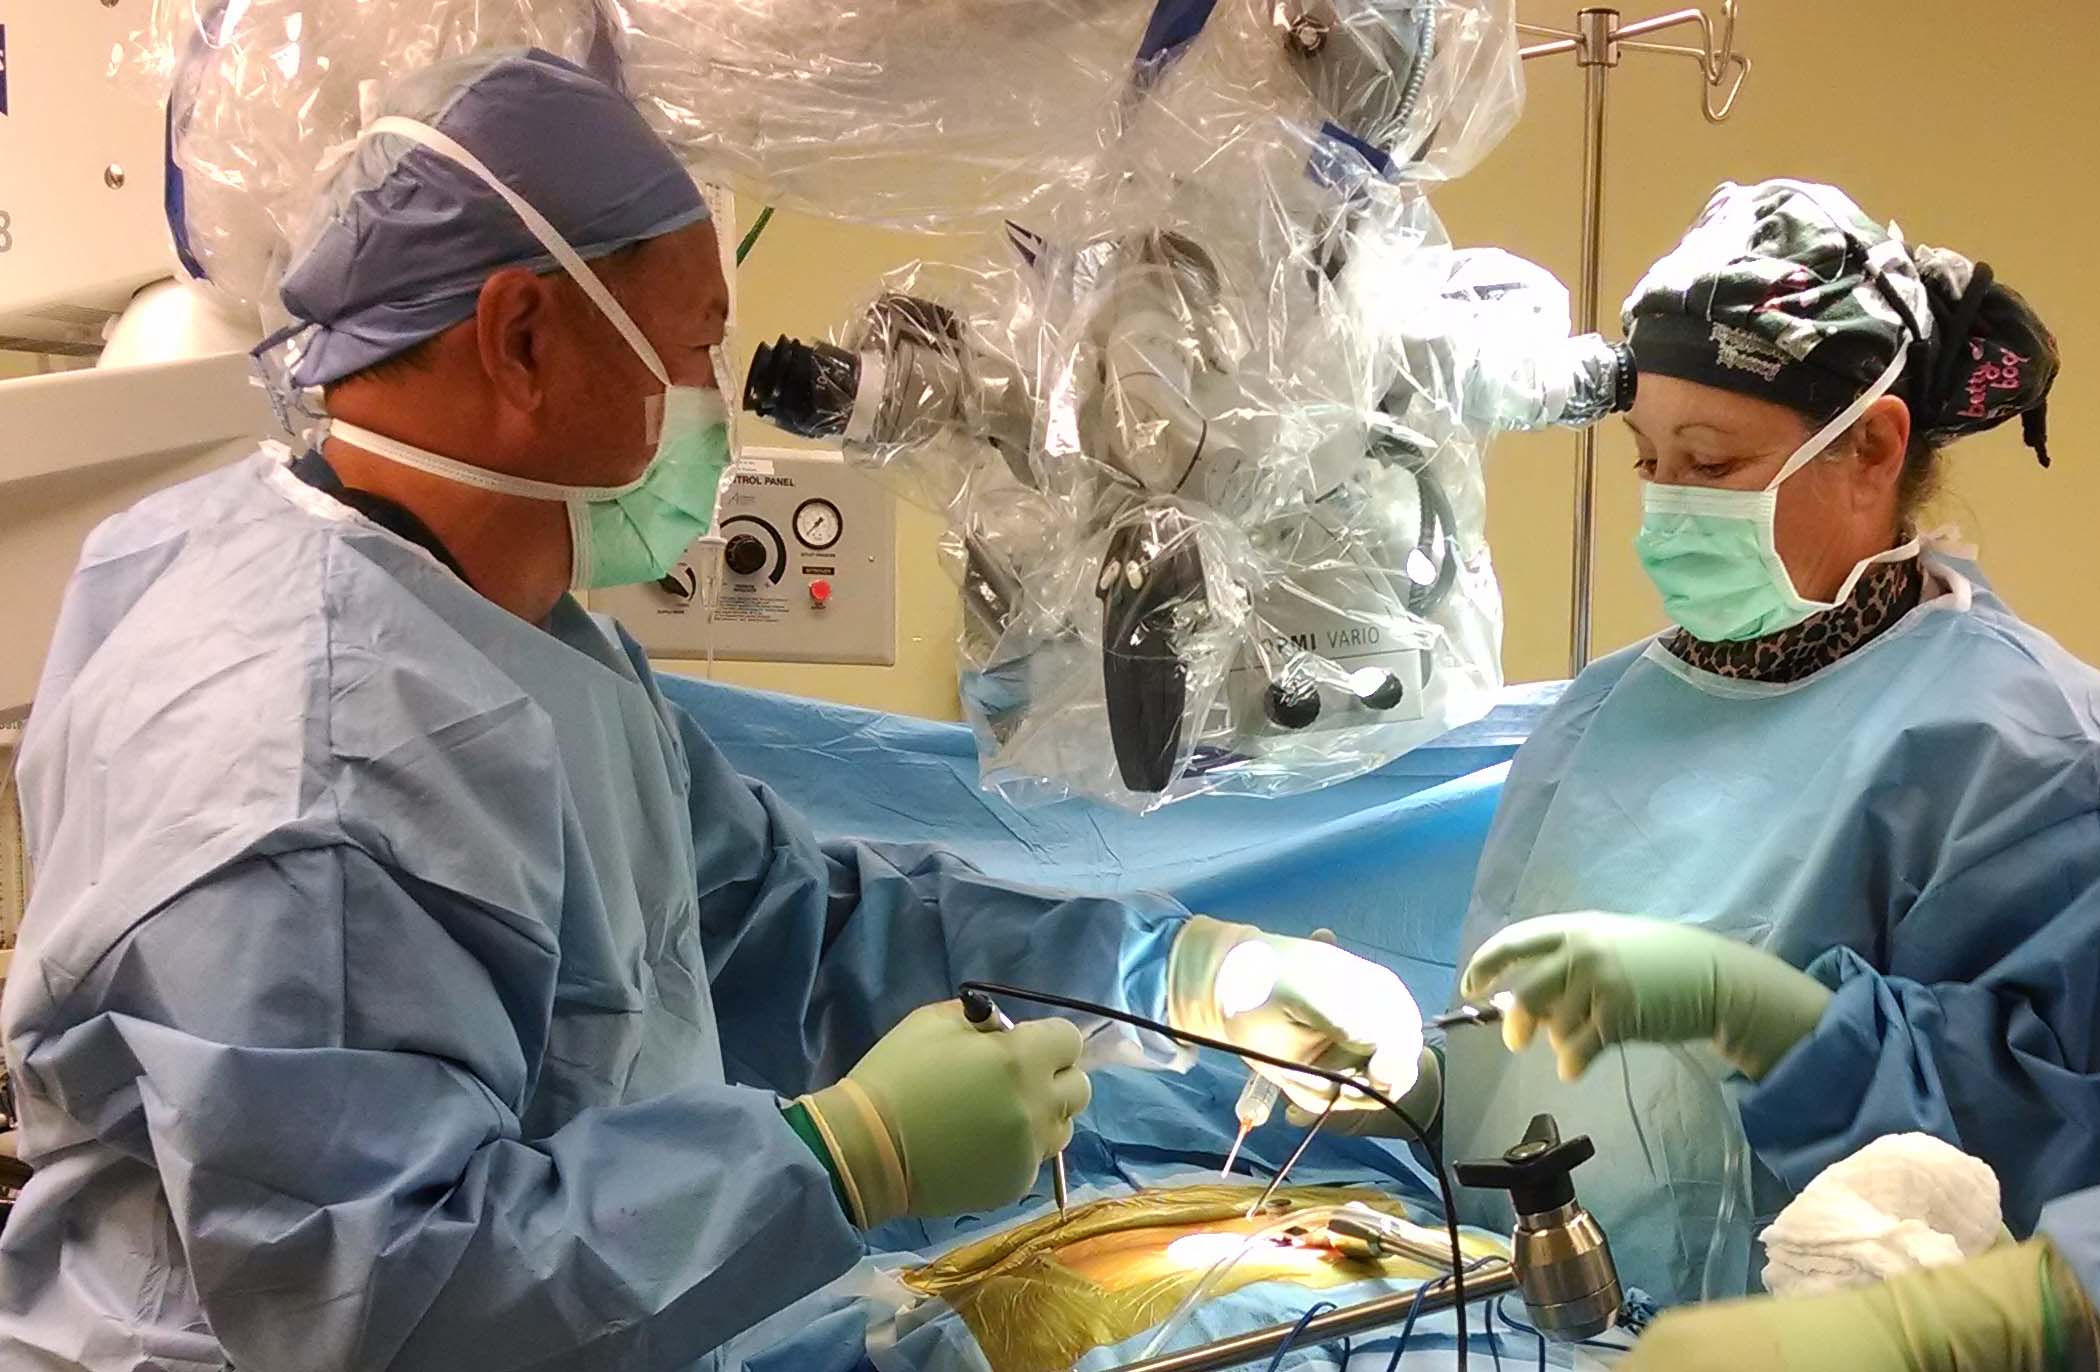 sugery picture 4.jpg